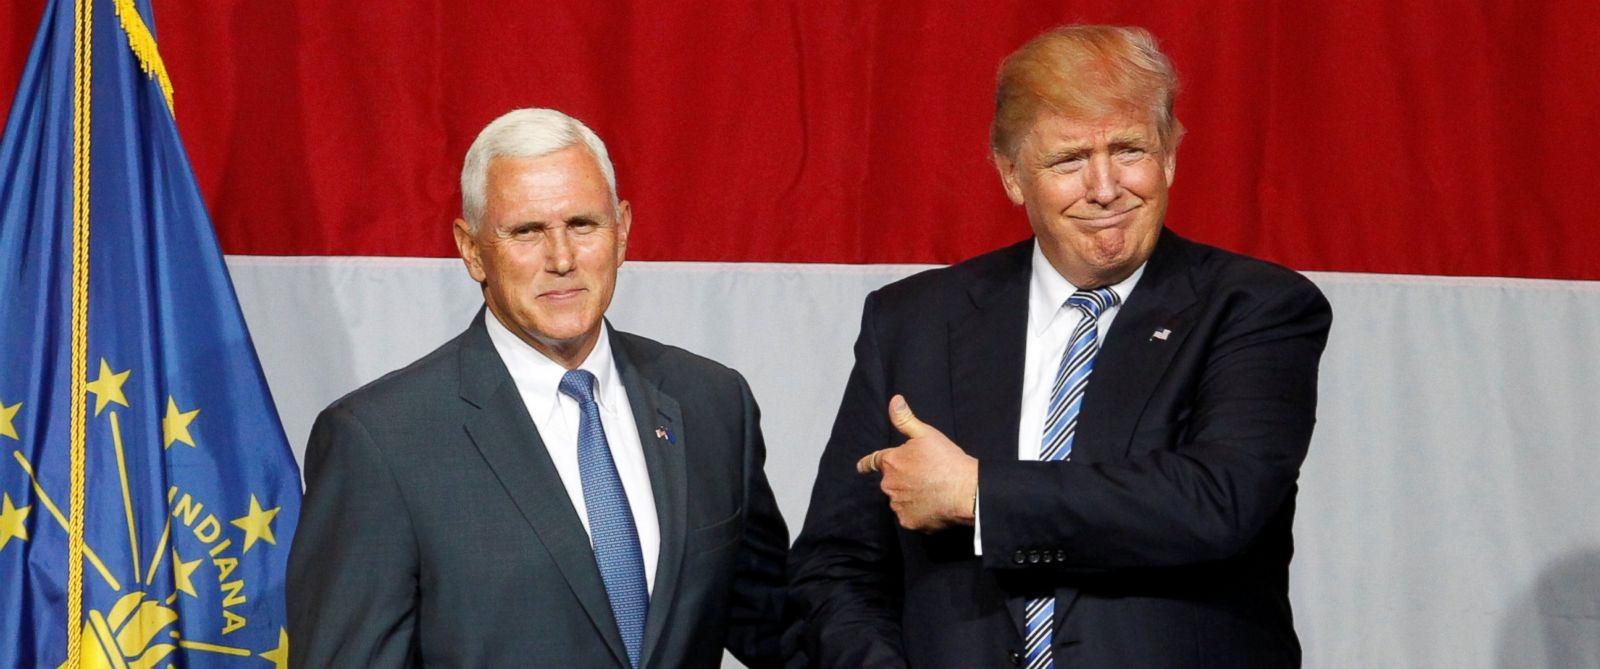 Trump: Vice President Mike Pence's trip to Indianapolis was 'long planned' Featured